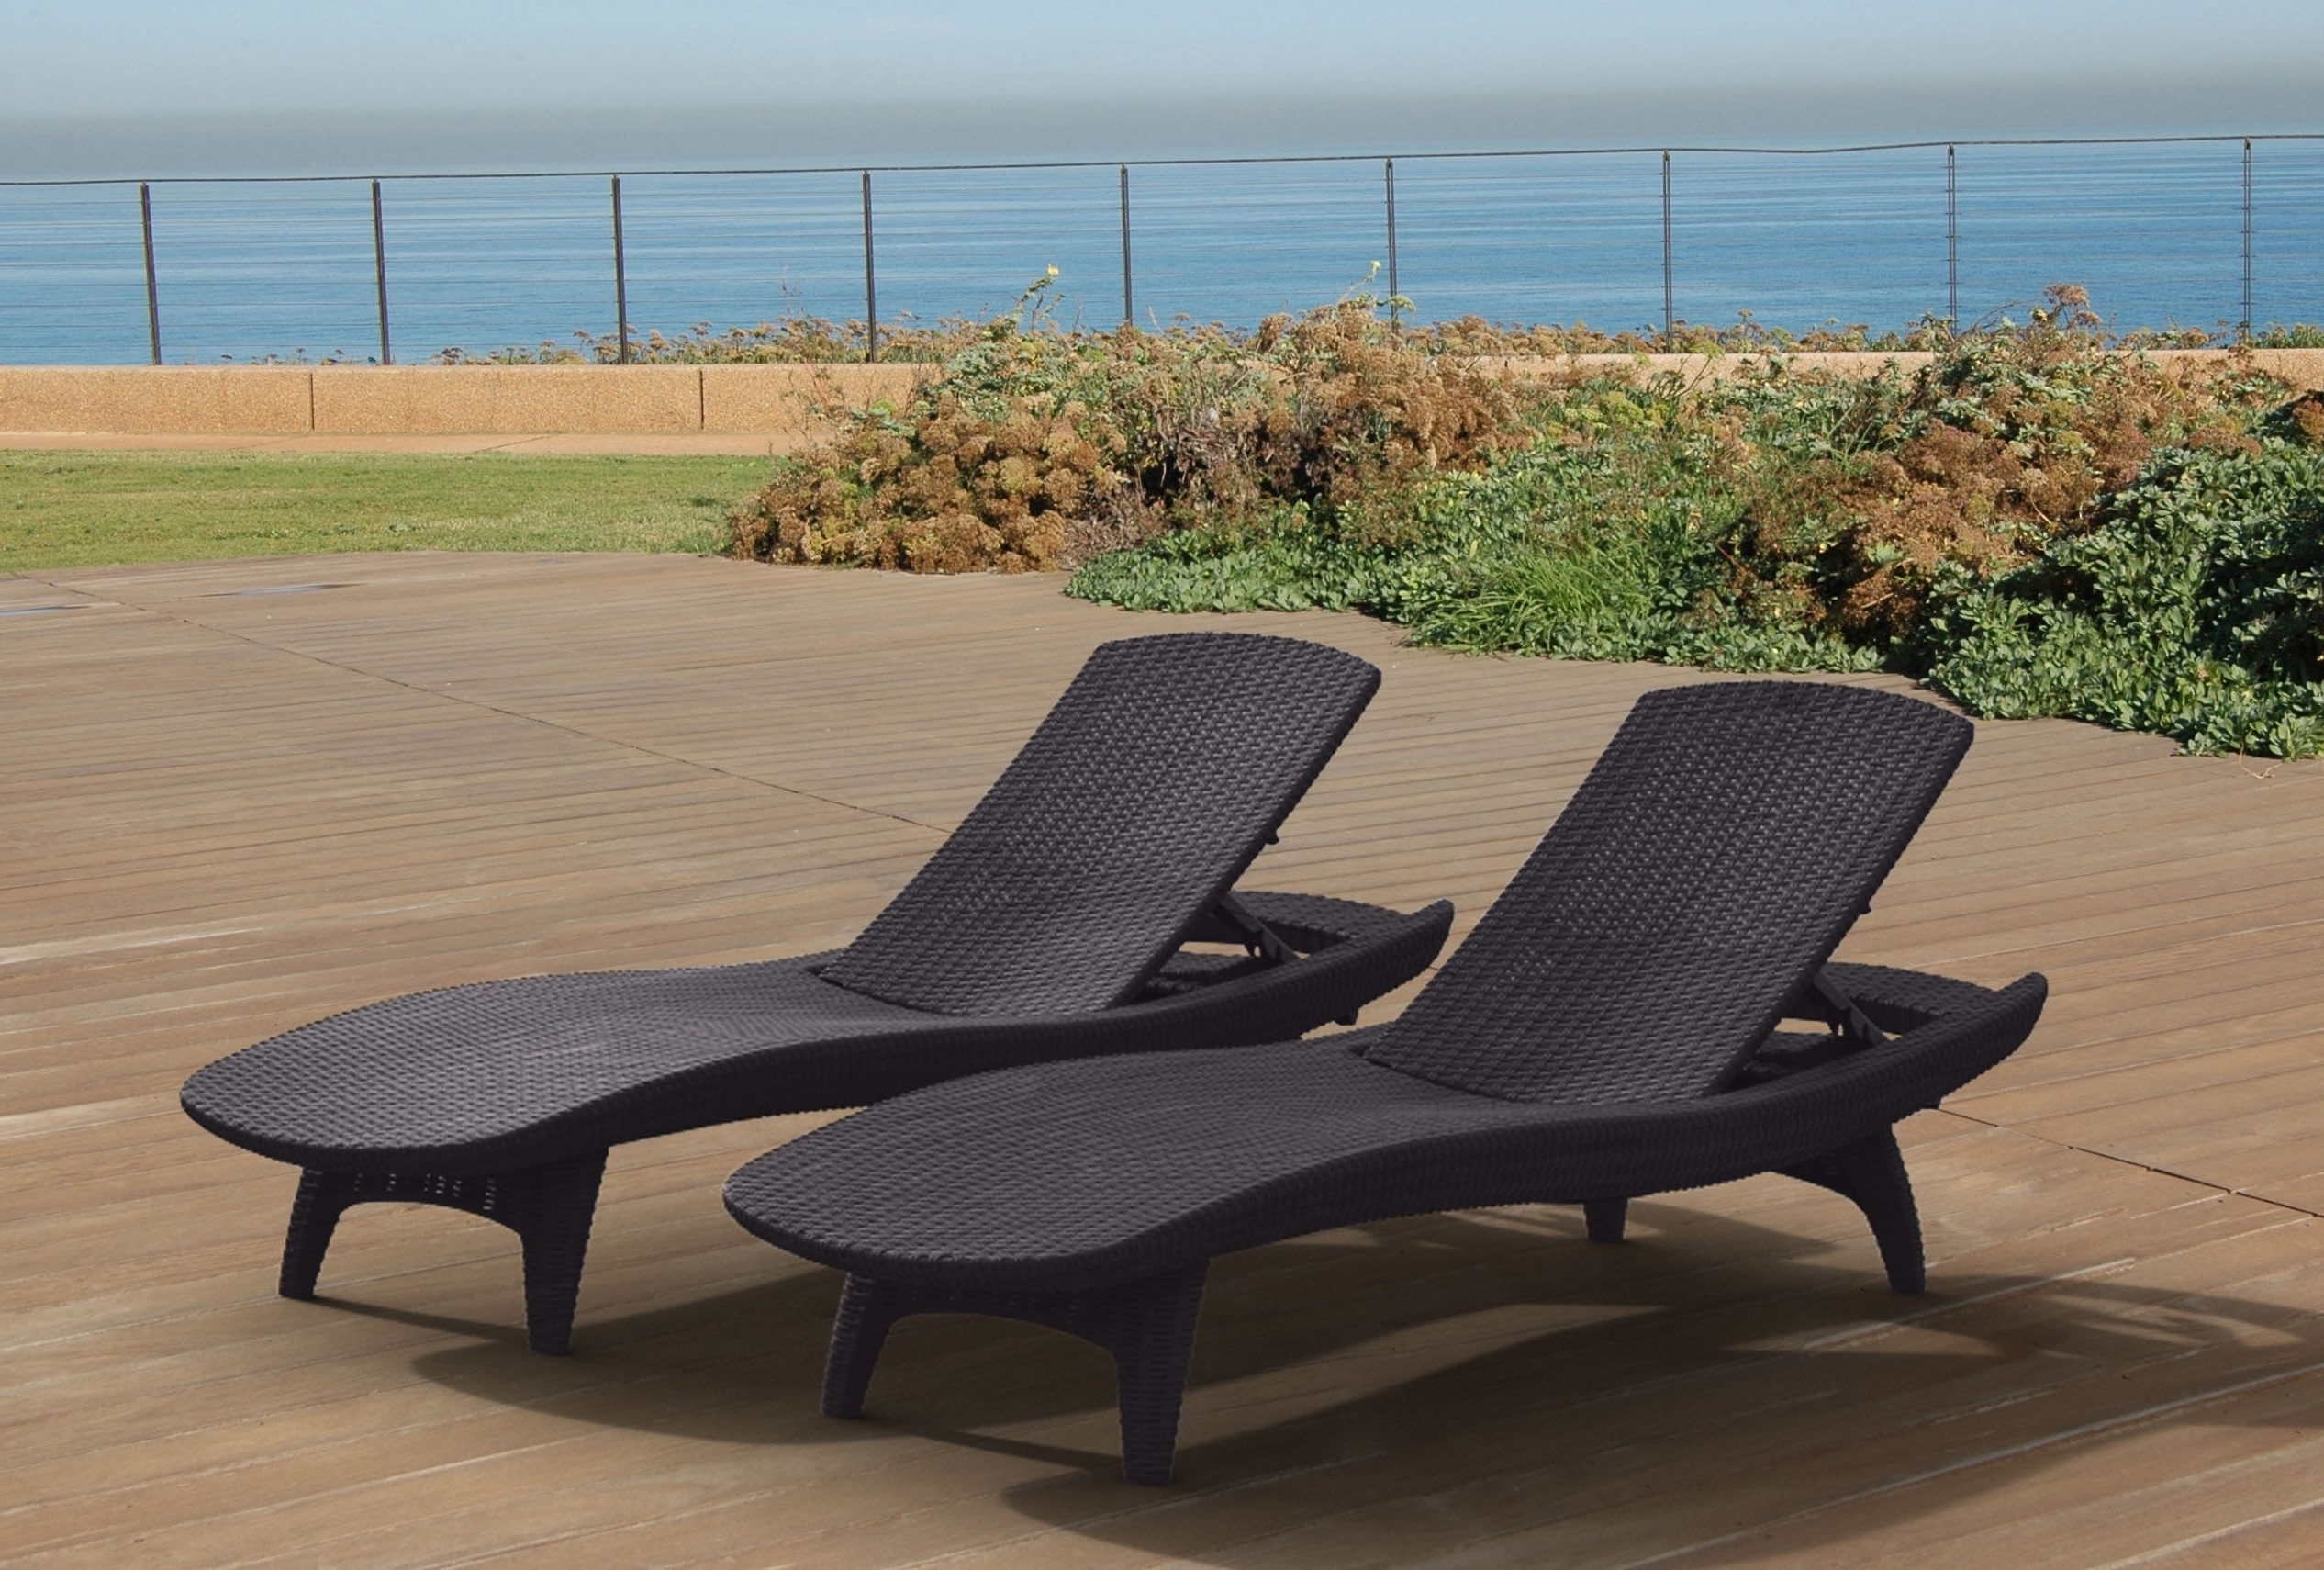 Most Recent Keter Pacific Chaise Sun Lounger 2 Pack Adjustable, Grey – Walmart Intended For Keter Chaise Lounge Chairs (View 11 of 15)